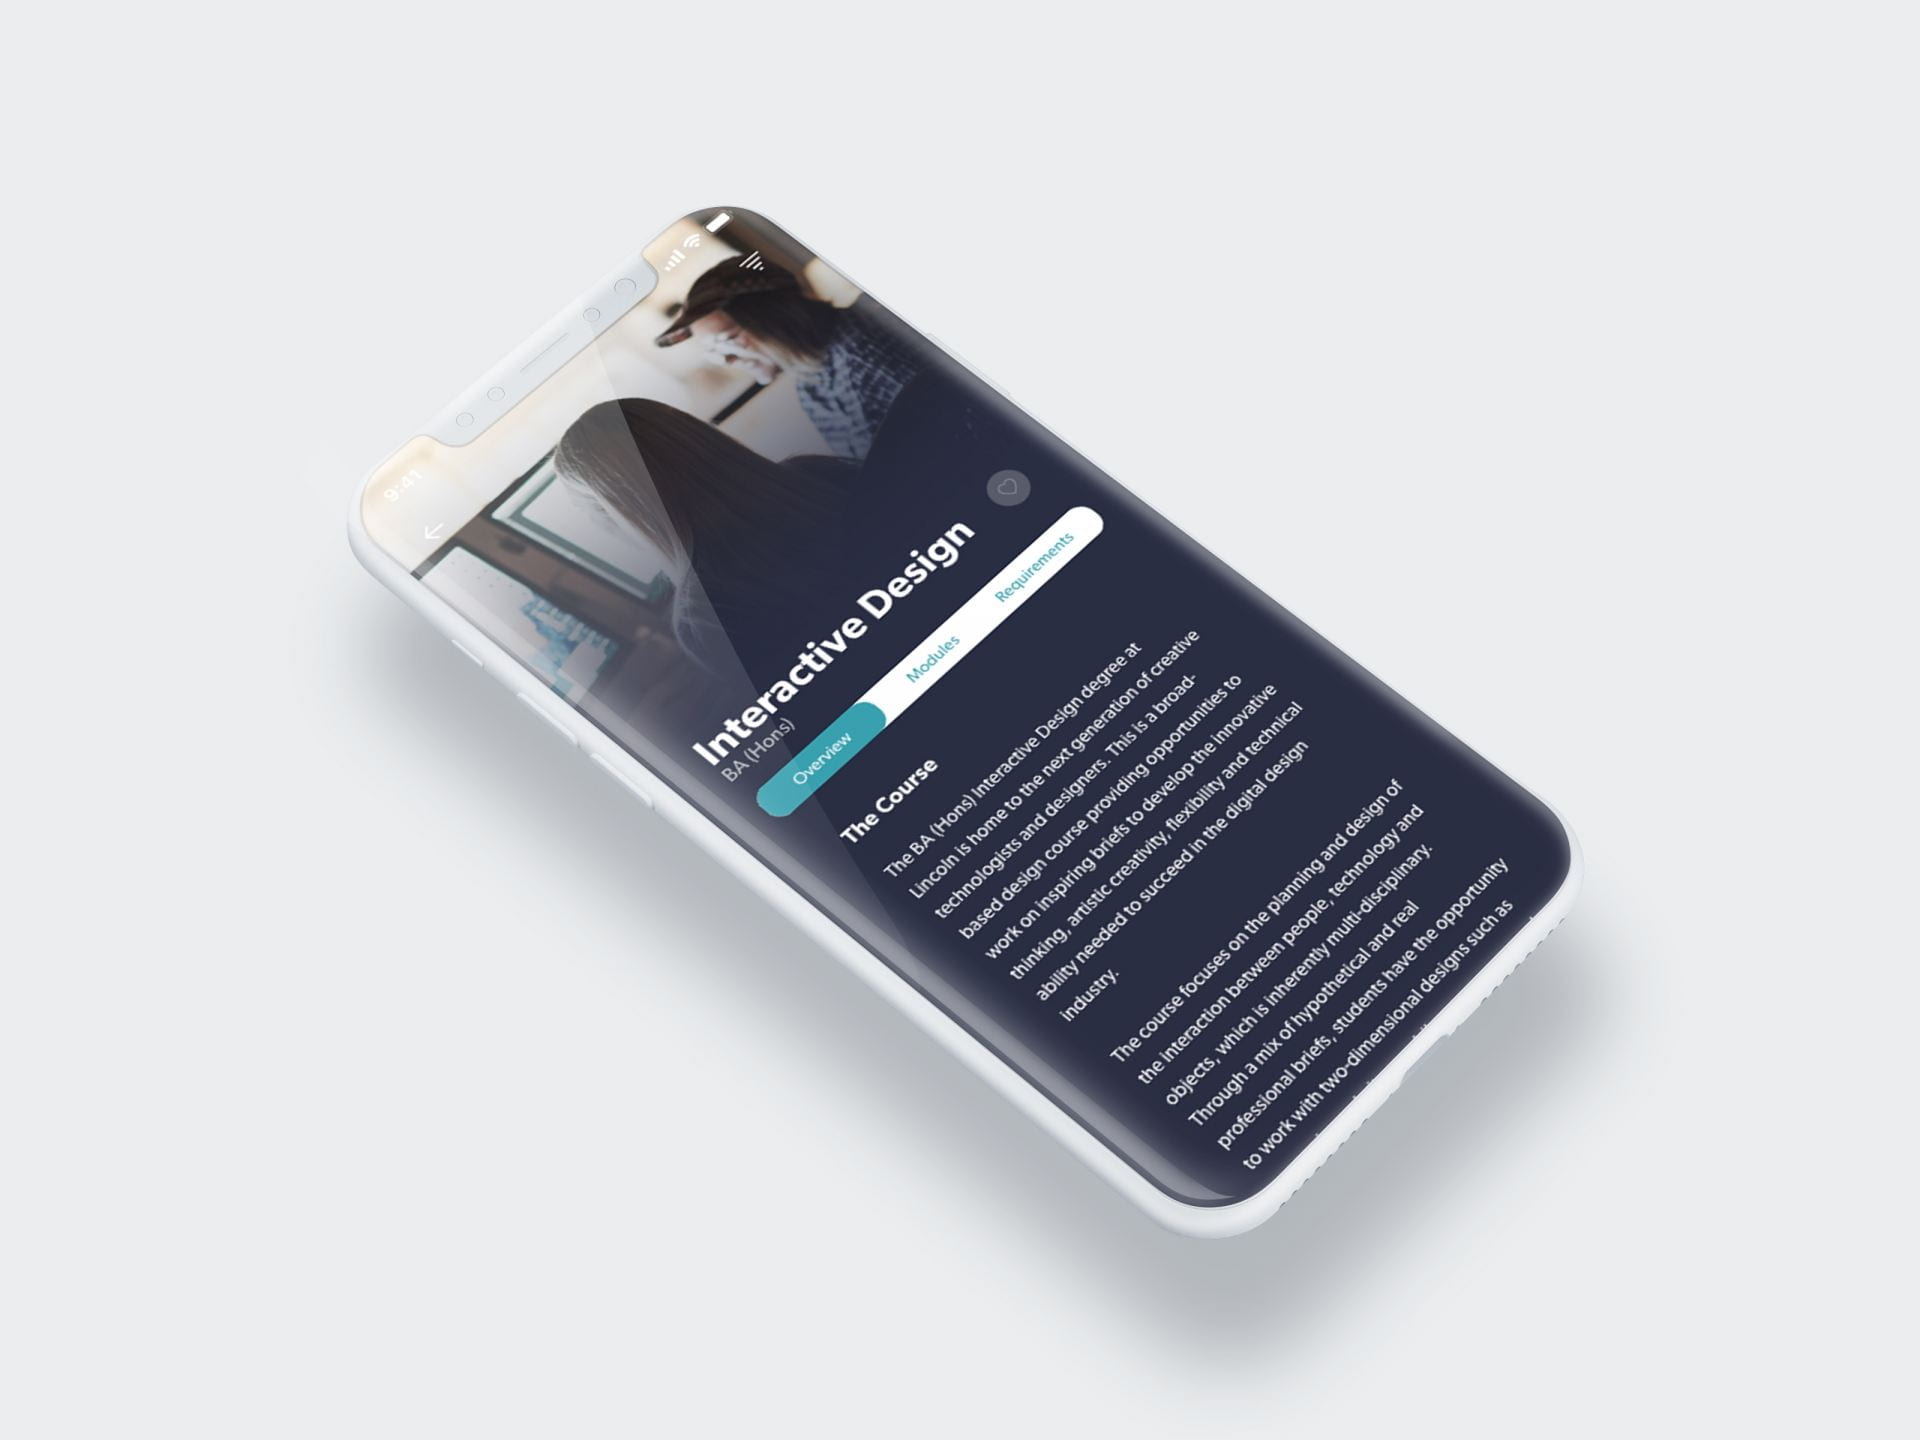 A close up of an iPhone X, displaying a page with text that reads: